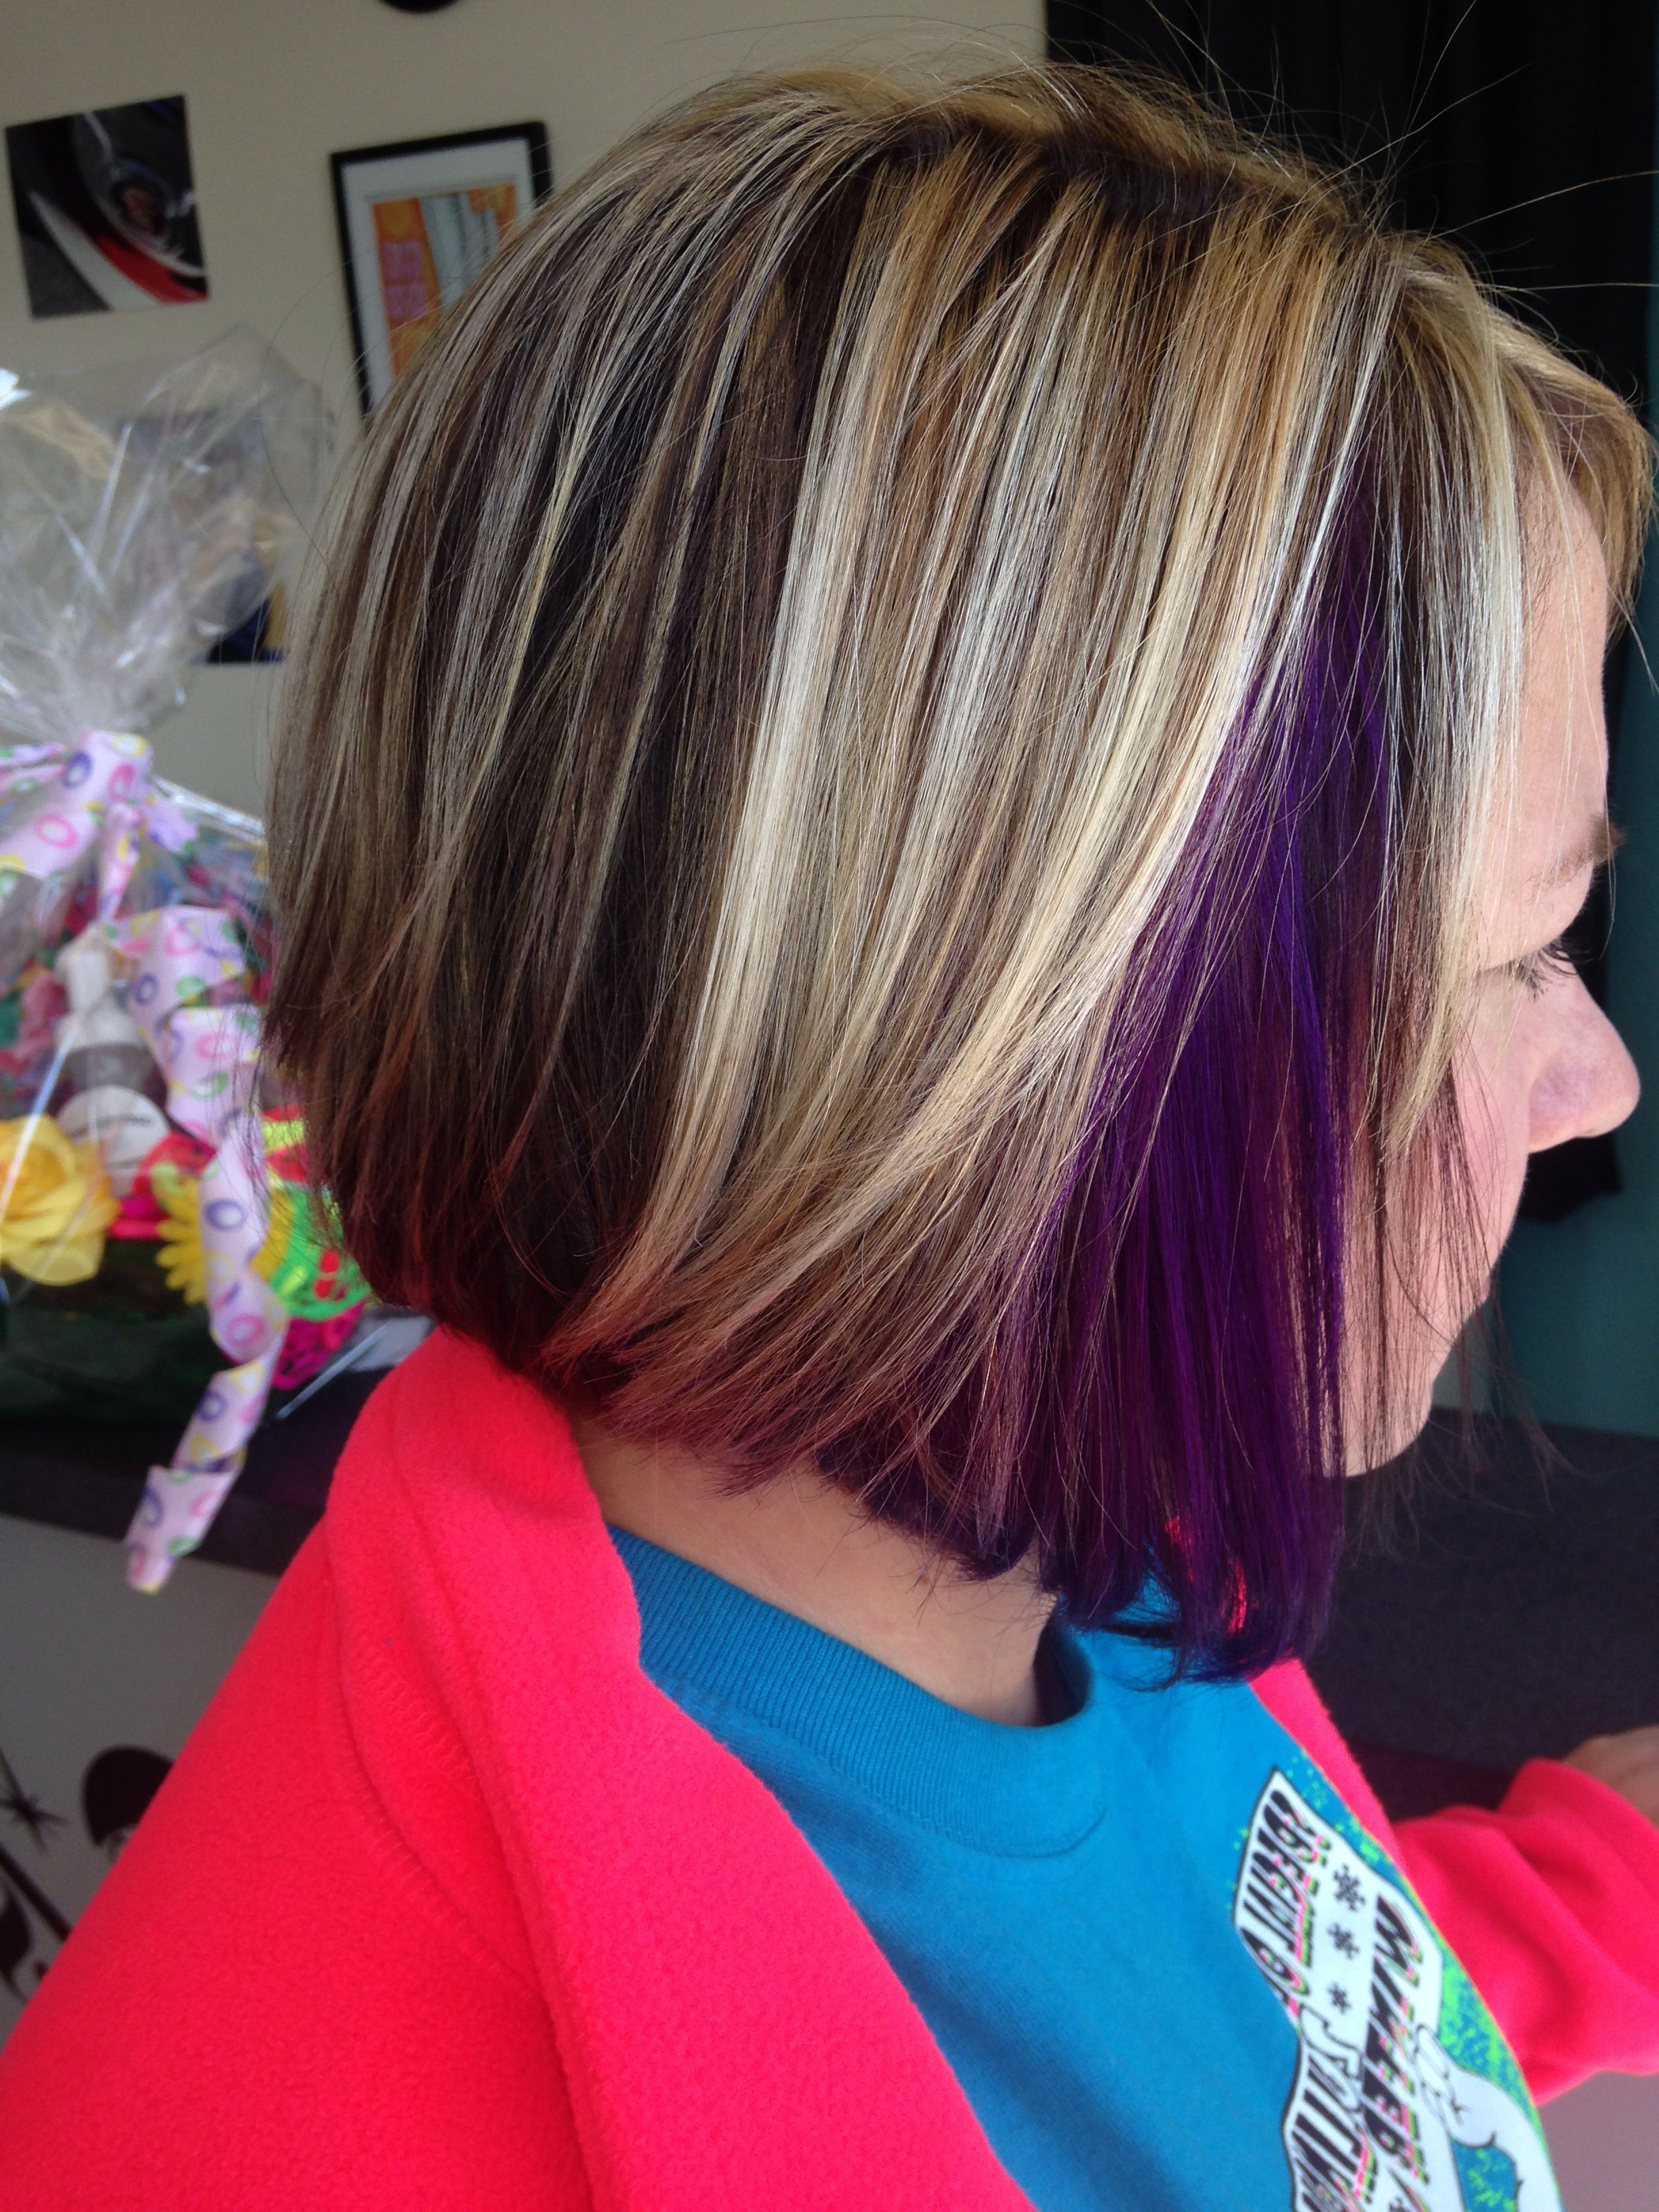 Just A Pop Of Purple! Peek A Boo Purple With Blonde Highlights Pertaining To Extreme Angled Bob Haircuts With Pink Peek A Boos (Gallery 3 of 20)